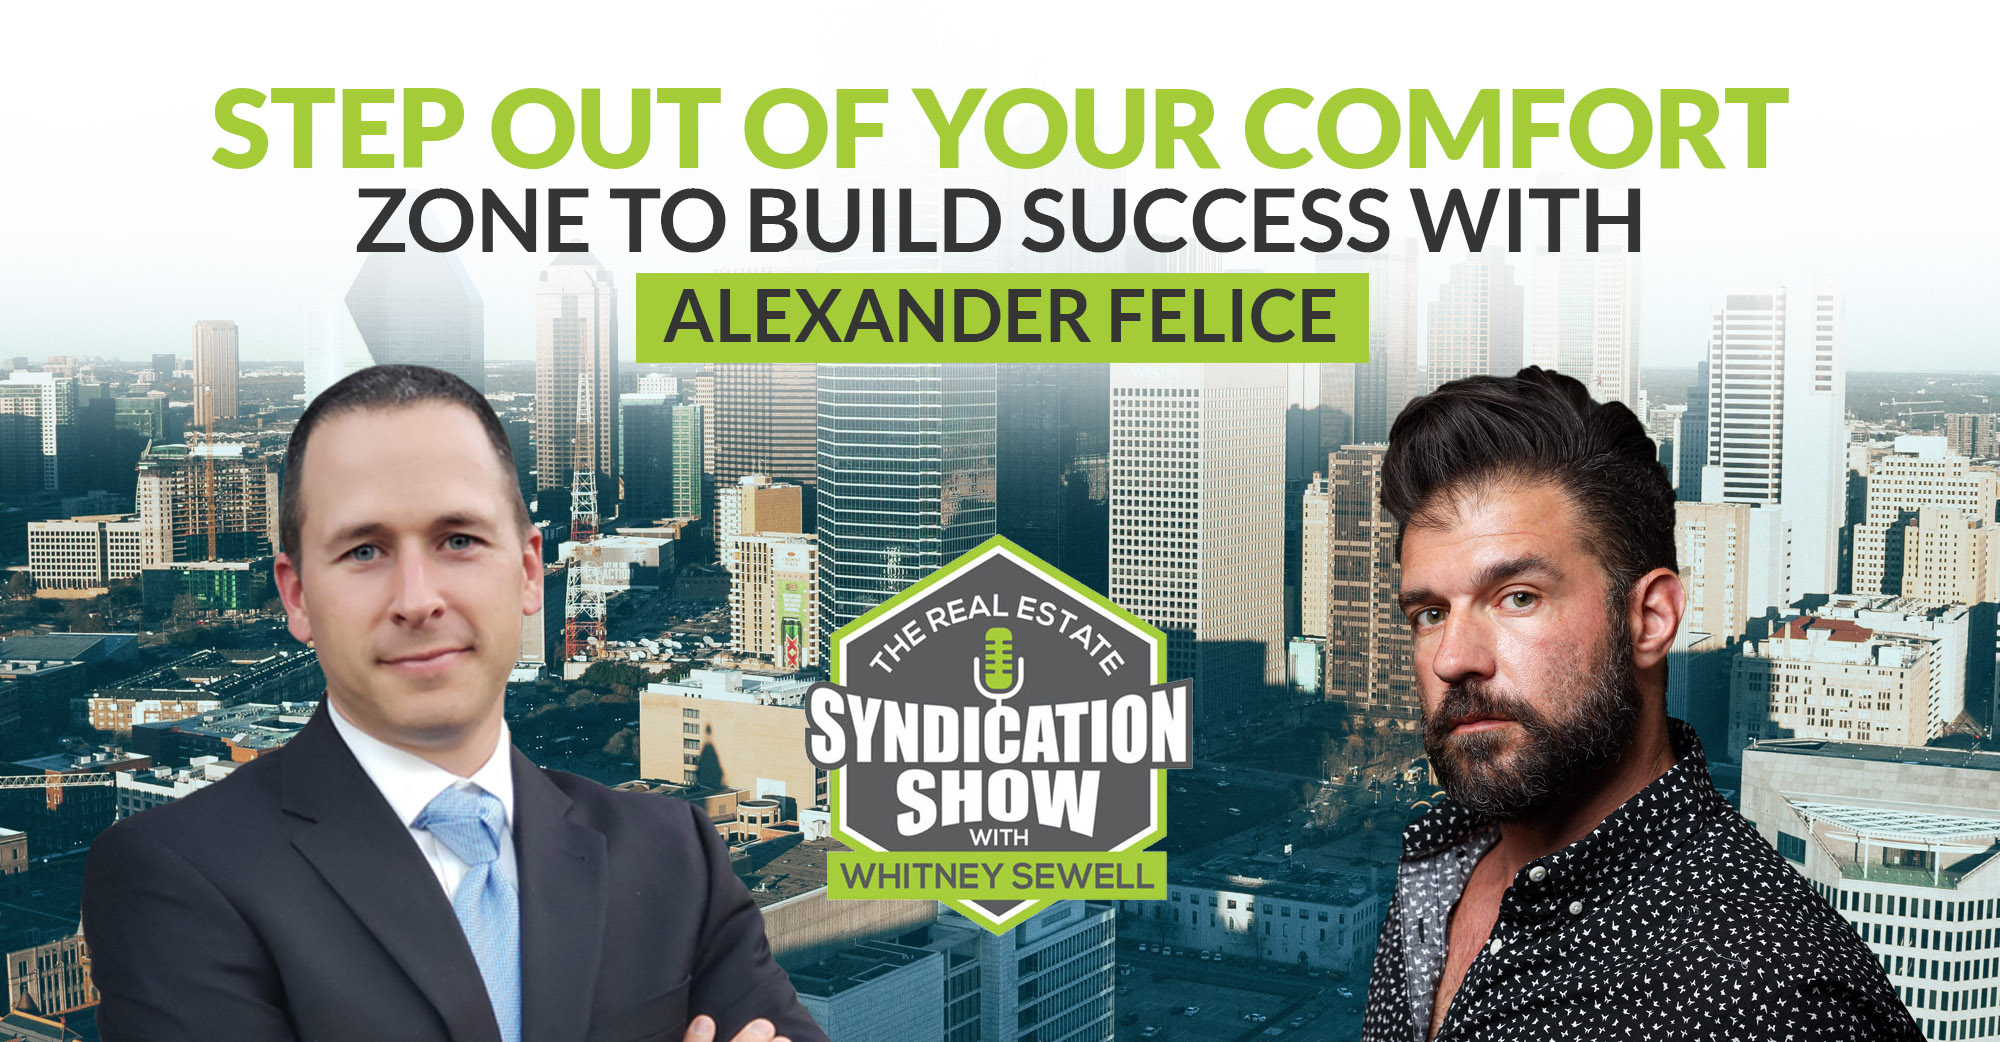 Step Out of Your Comfort Zone to Build Success with Alexander Felice